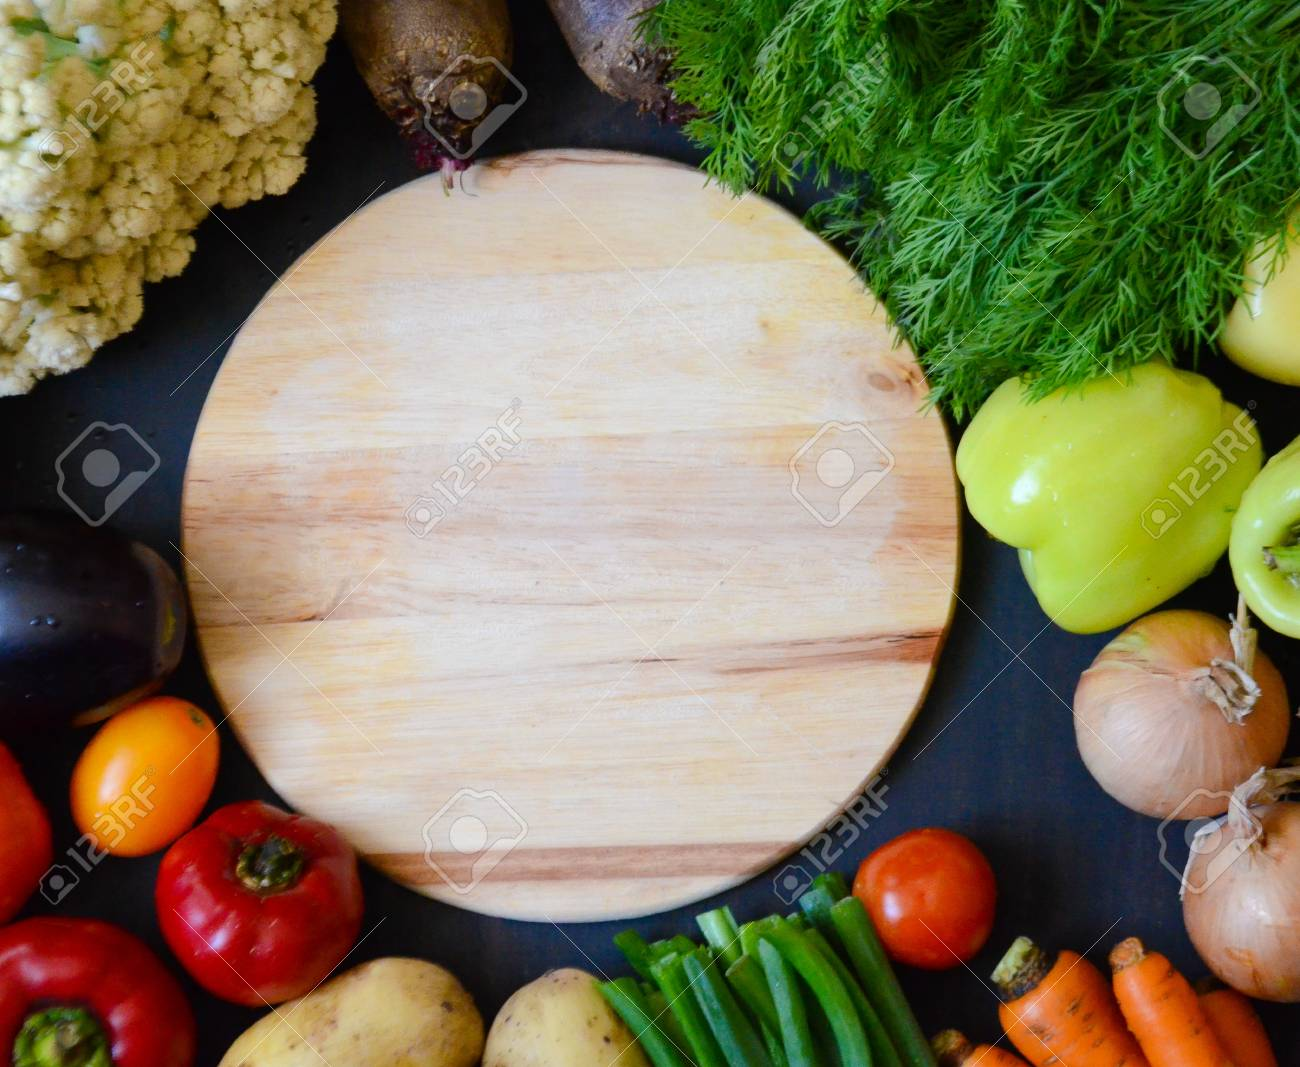 Wooden Round Cutting Board Next To The Vegetables On Black Background Stock Photo Picture And Royalty Free Image Image 86677862